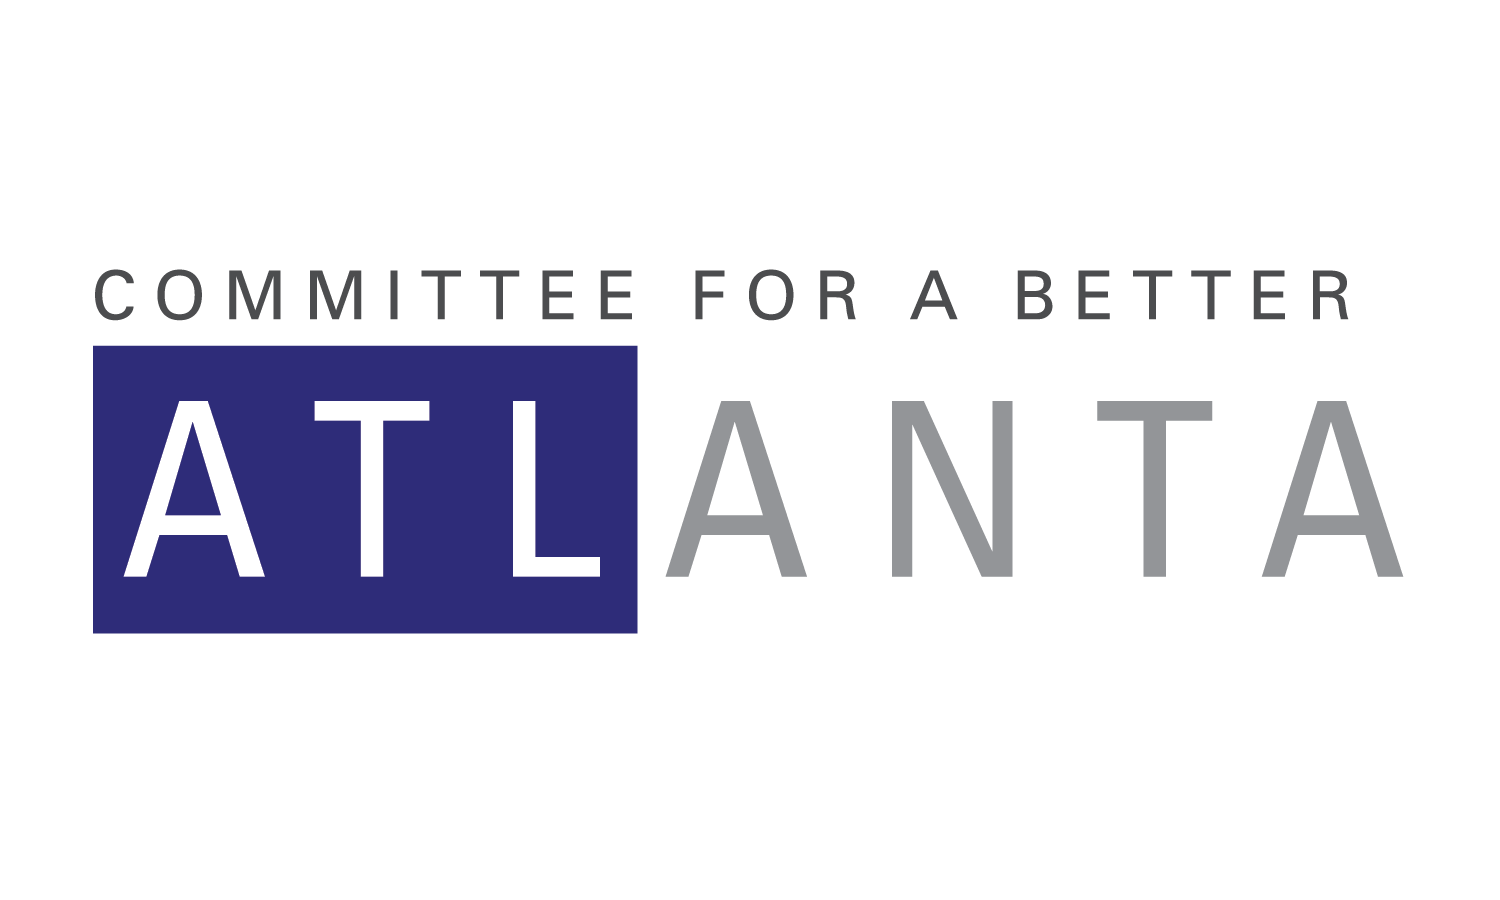 committee_for_a_better_atl_logo-01_-002-.png